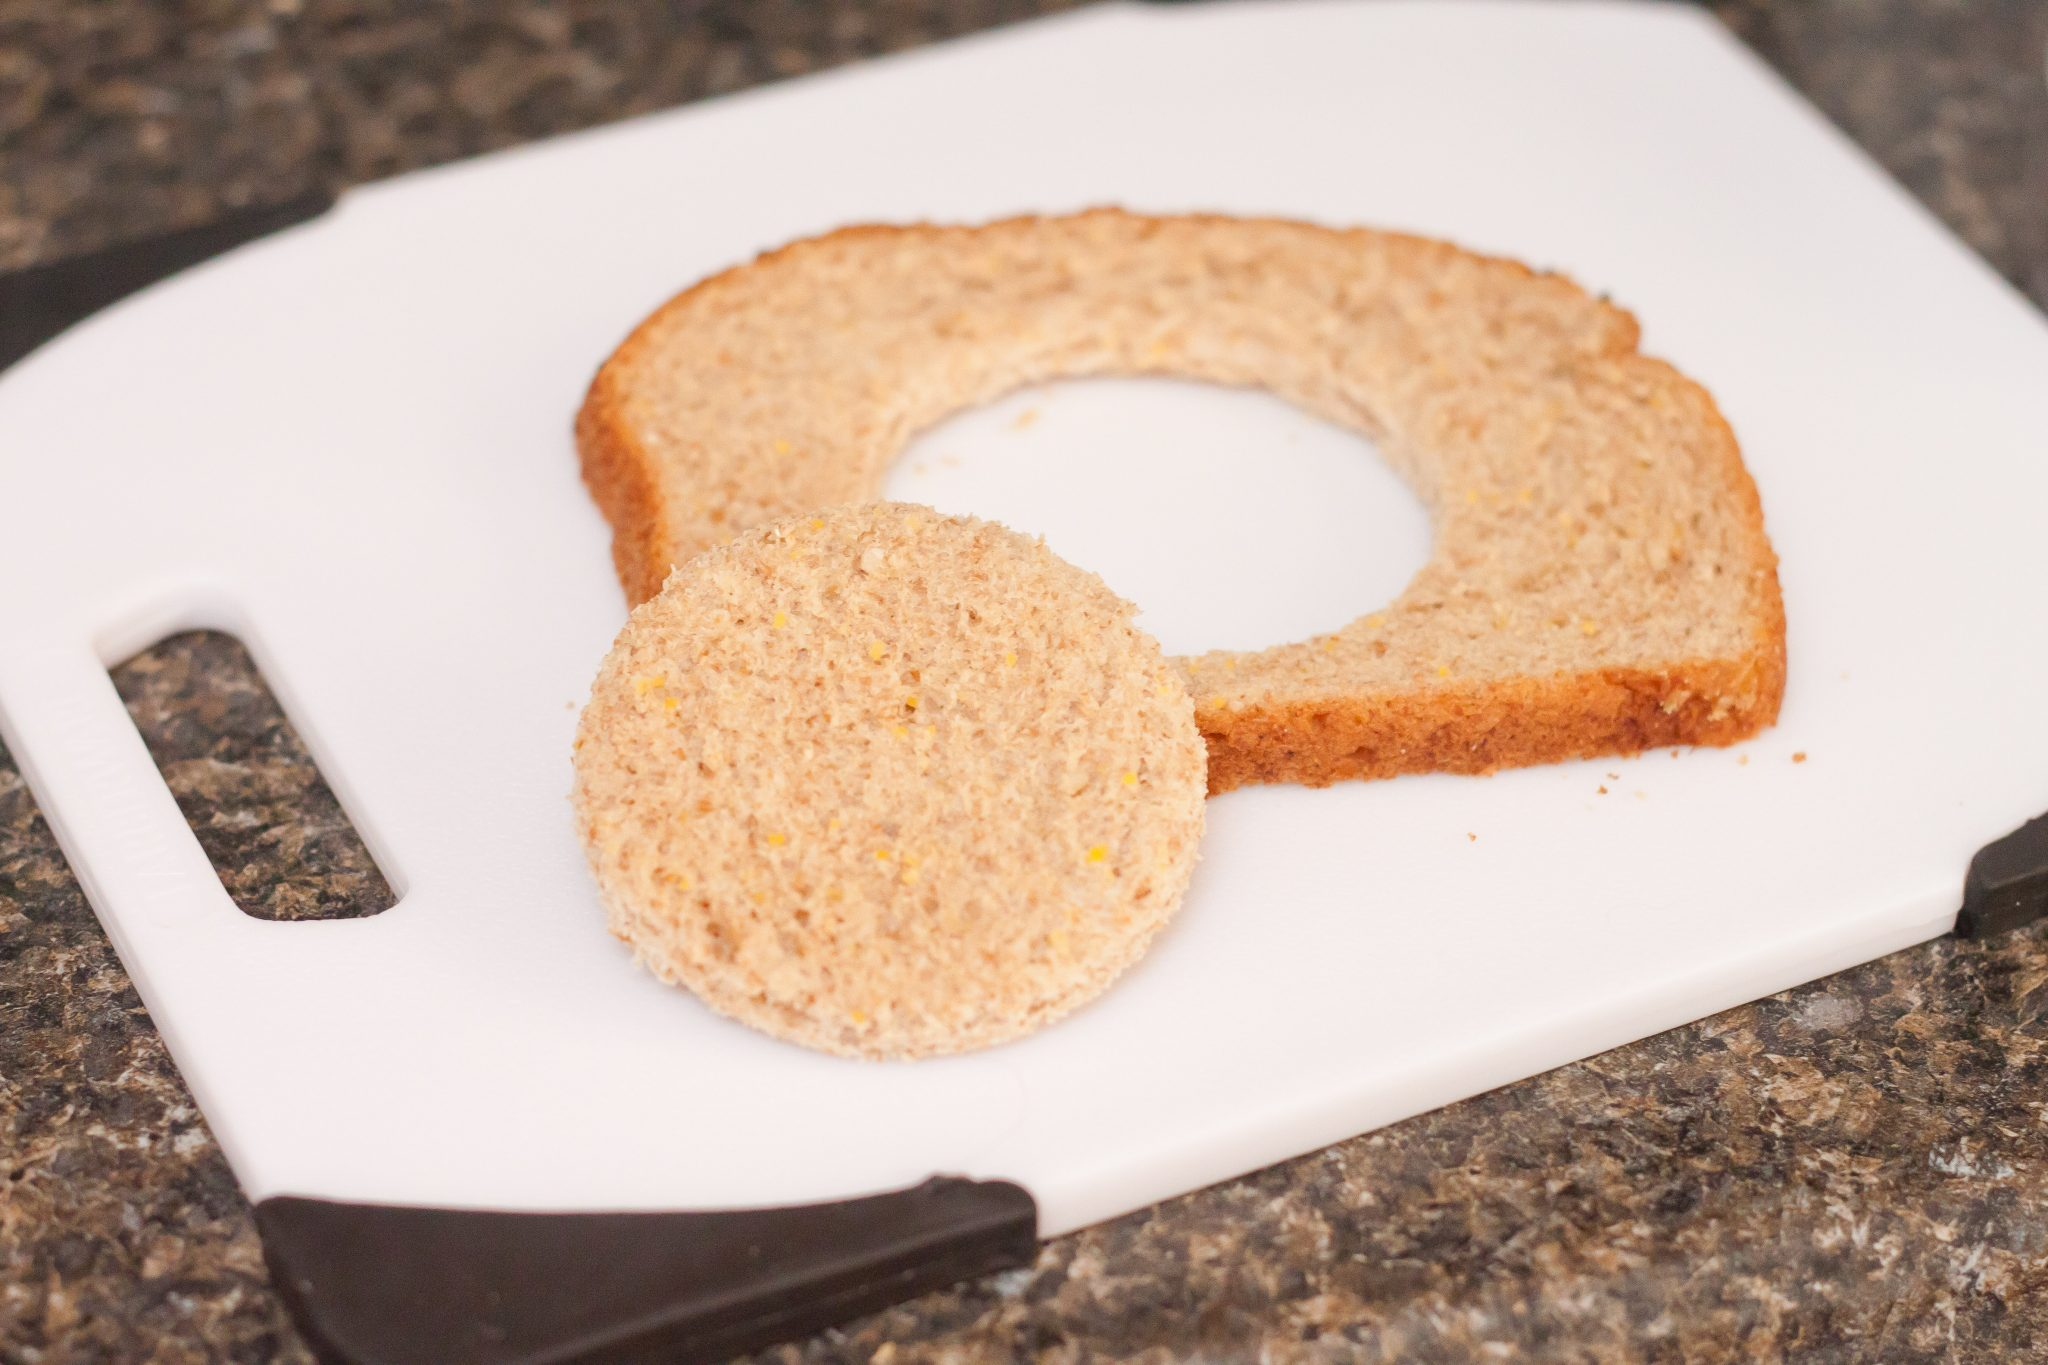 Cut a hole in the center of the bread slice.